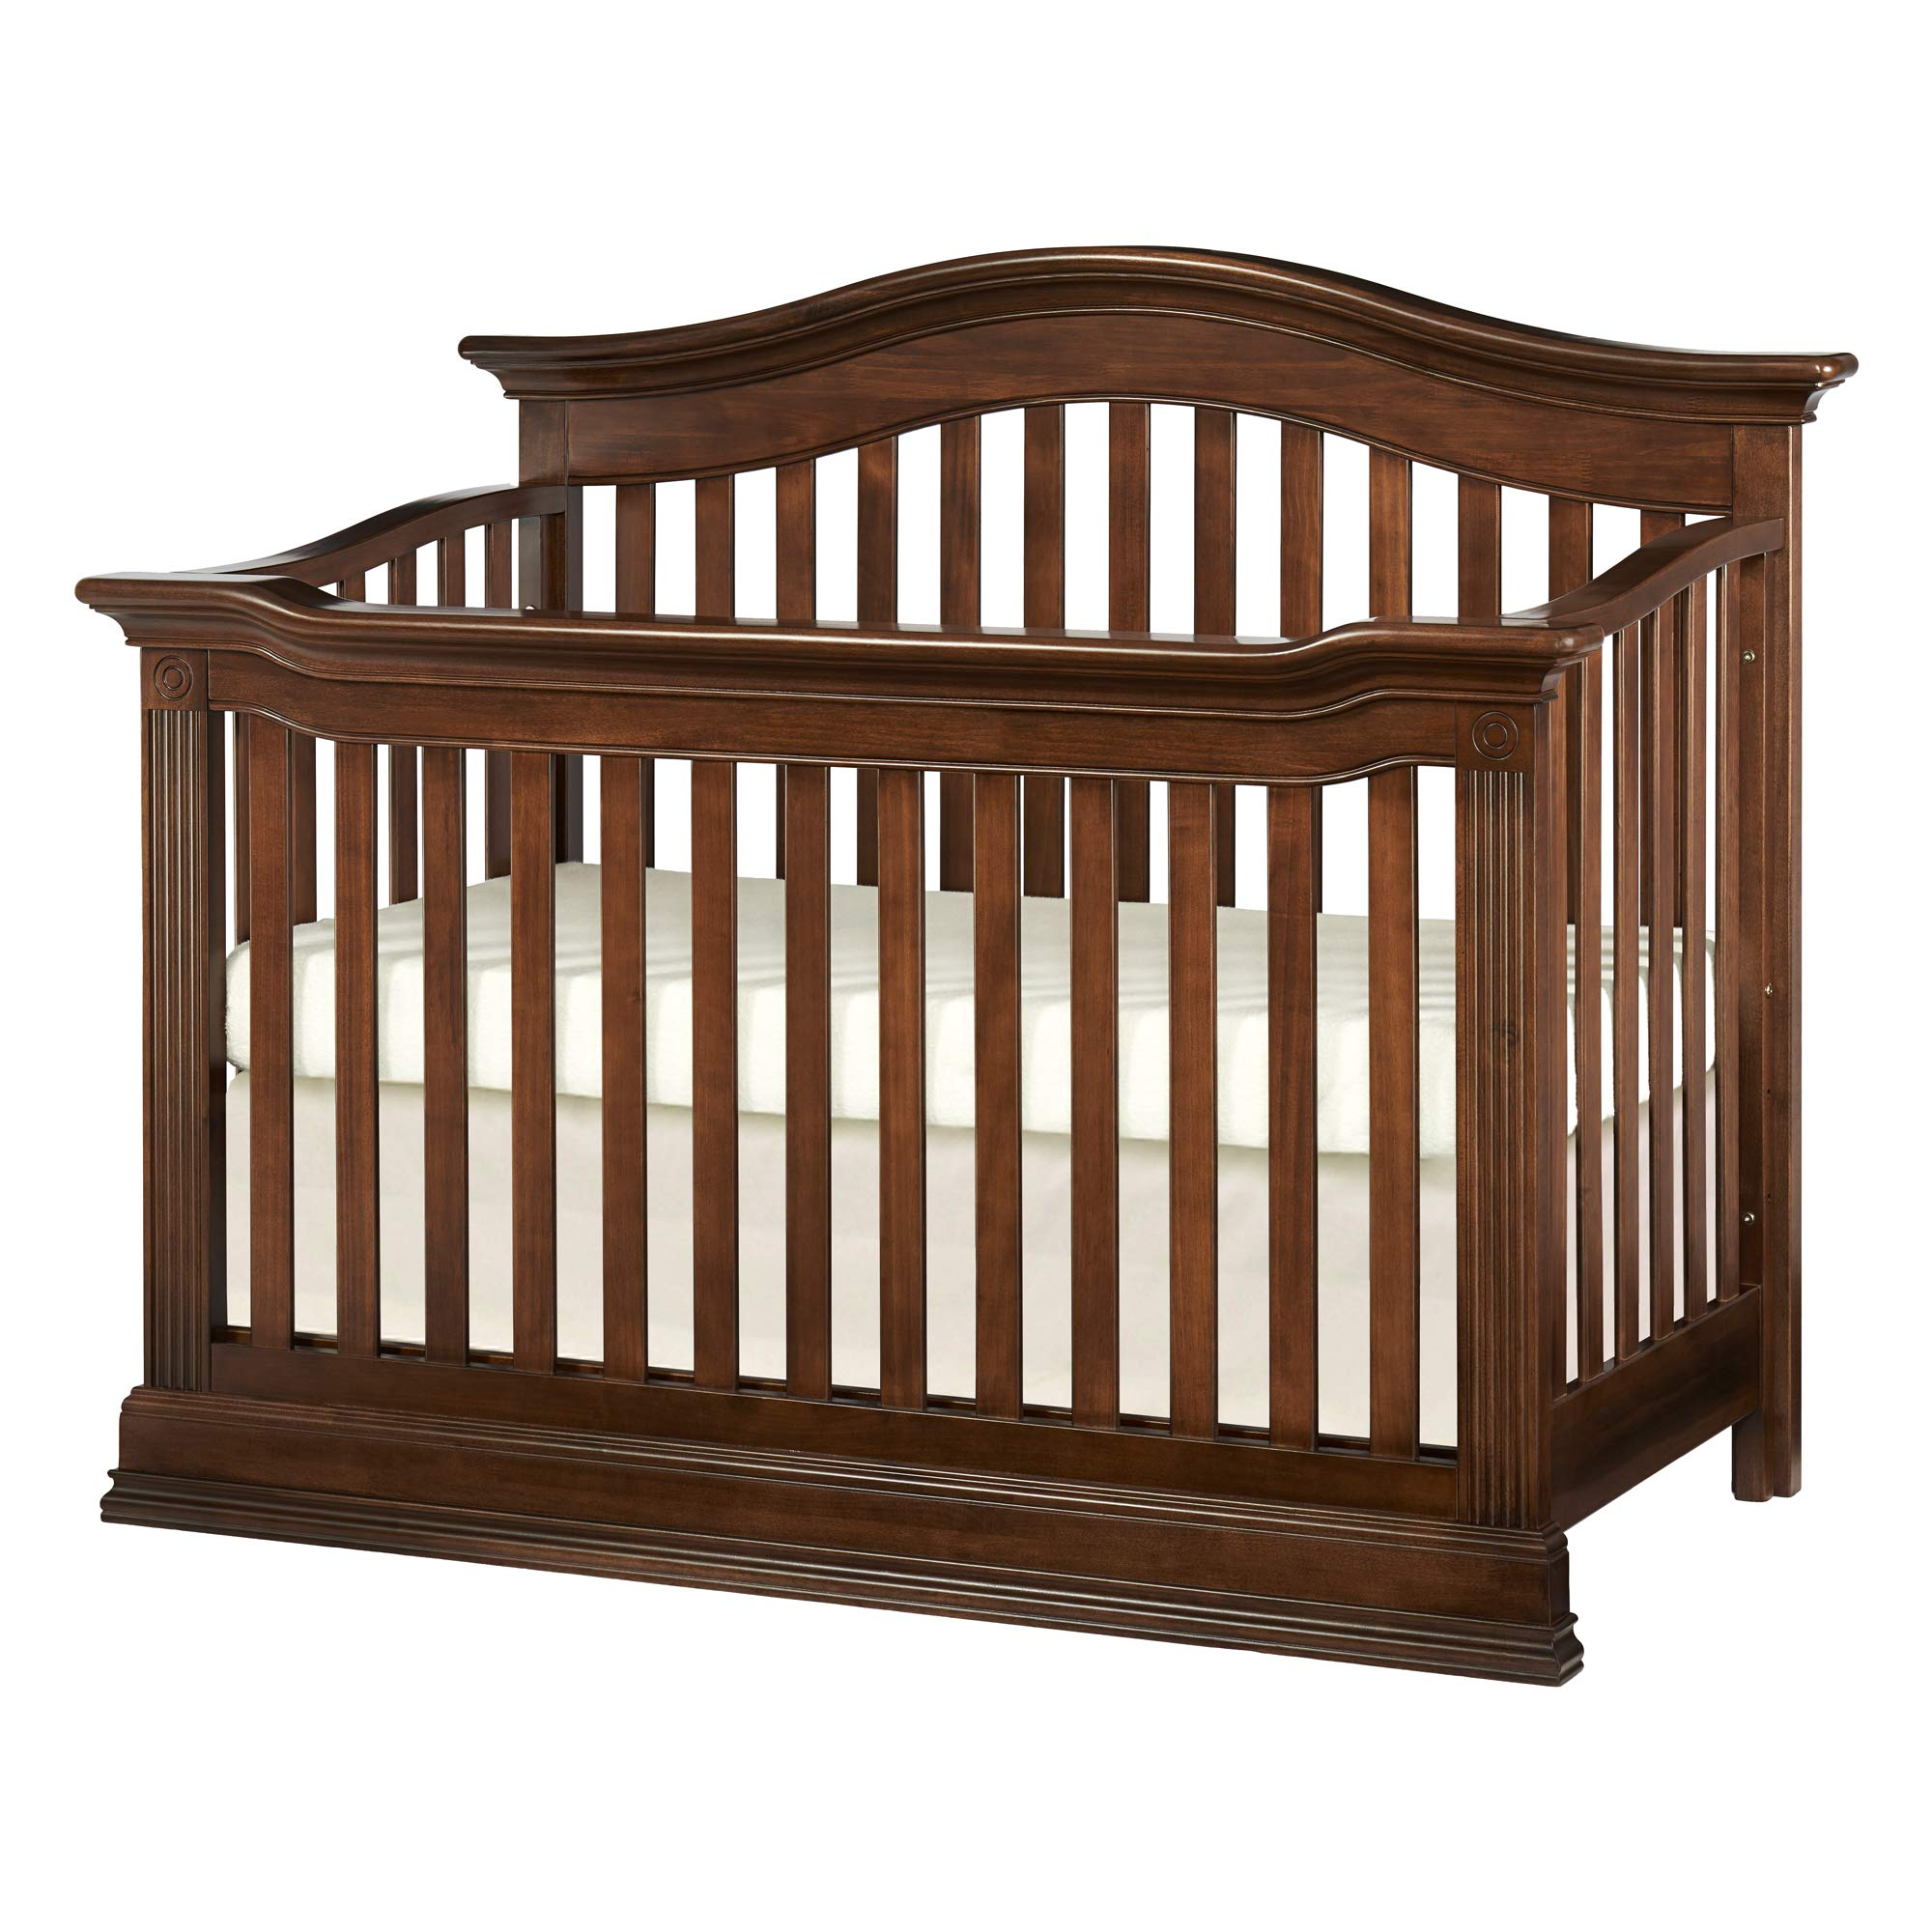 Baby Cache Natural Hardwood 4-in-1 Convertible Crib | Multigenerational Quality & Design | Kiln-dried & Hand-Crafted Construction | Montana Collection, Brown Sugar